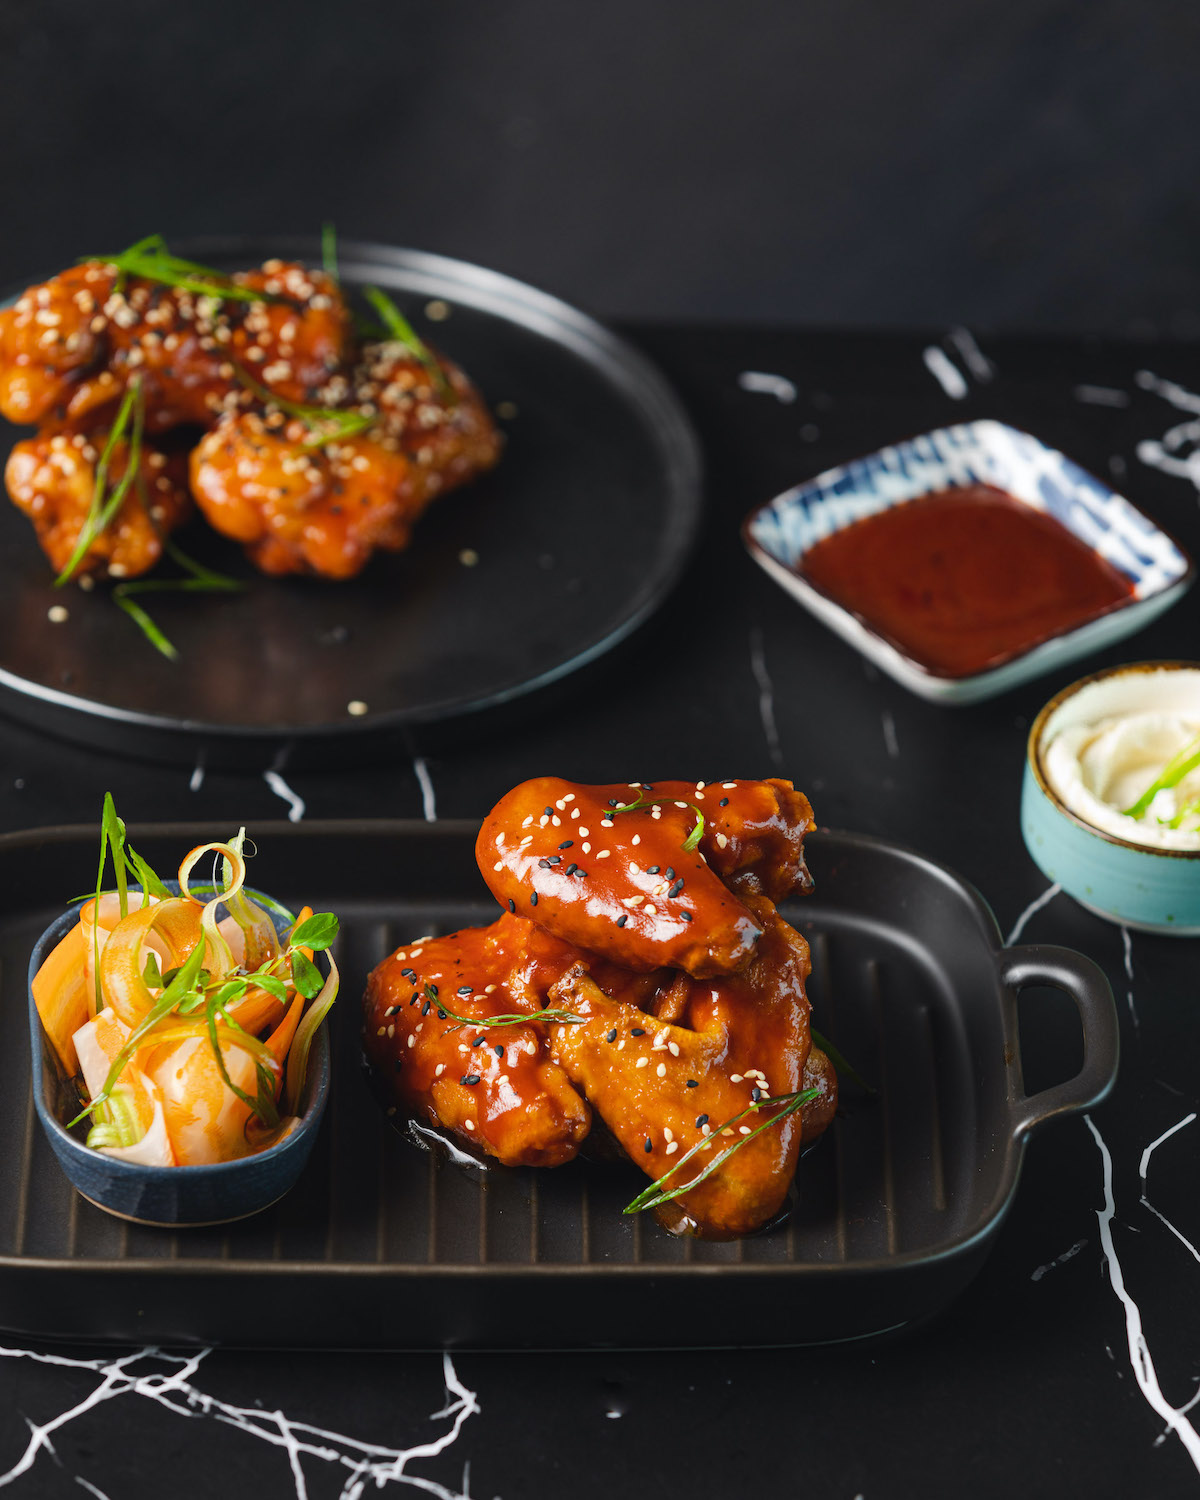 Bhut Jolokia Spiced Chicken Wings with Chive Sour Cream - Seven Kitchens, The St. Regis Mumbai 1